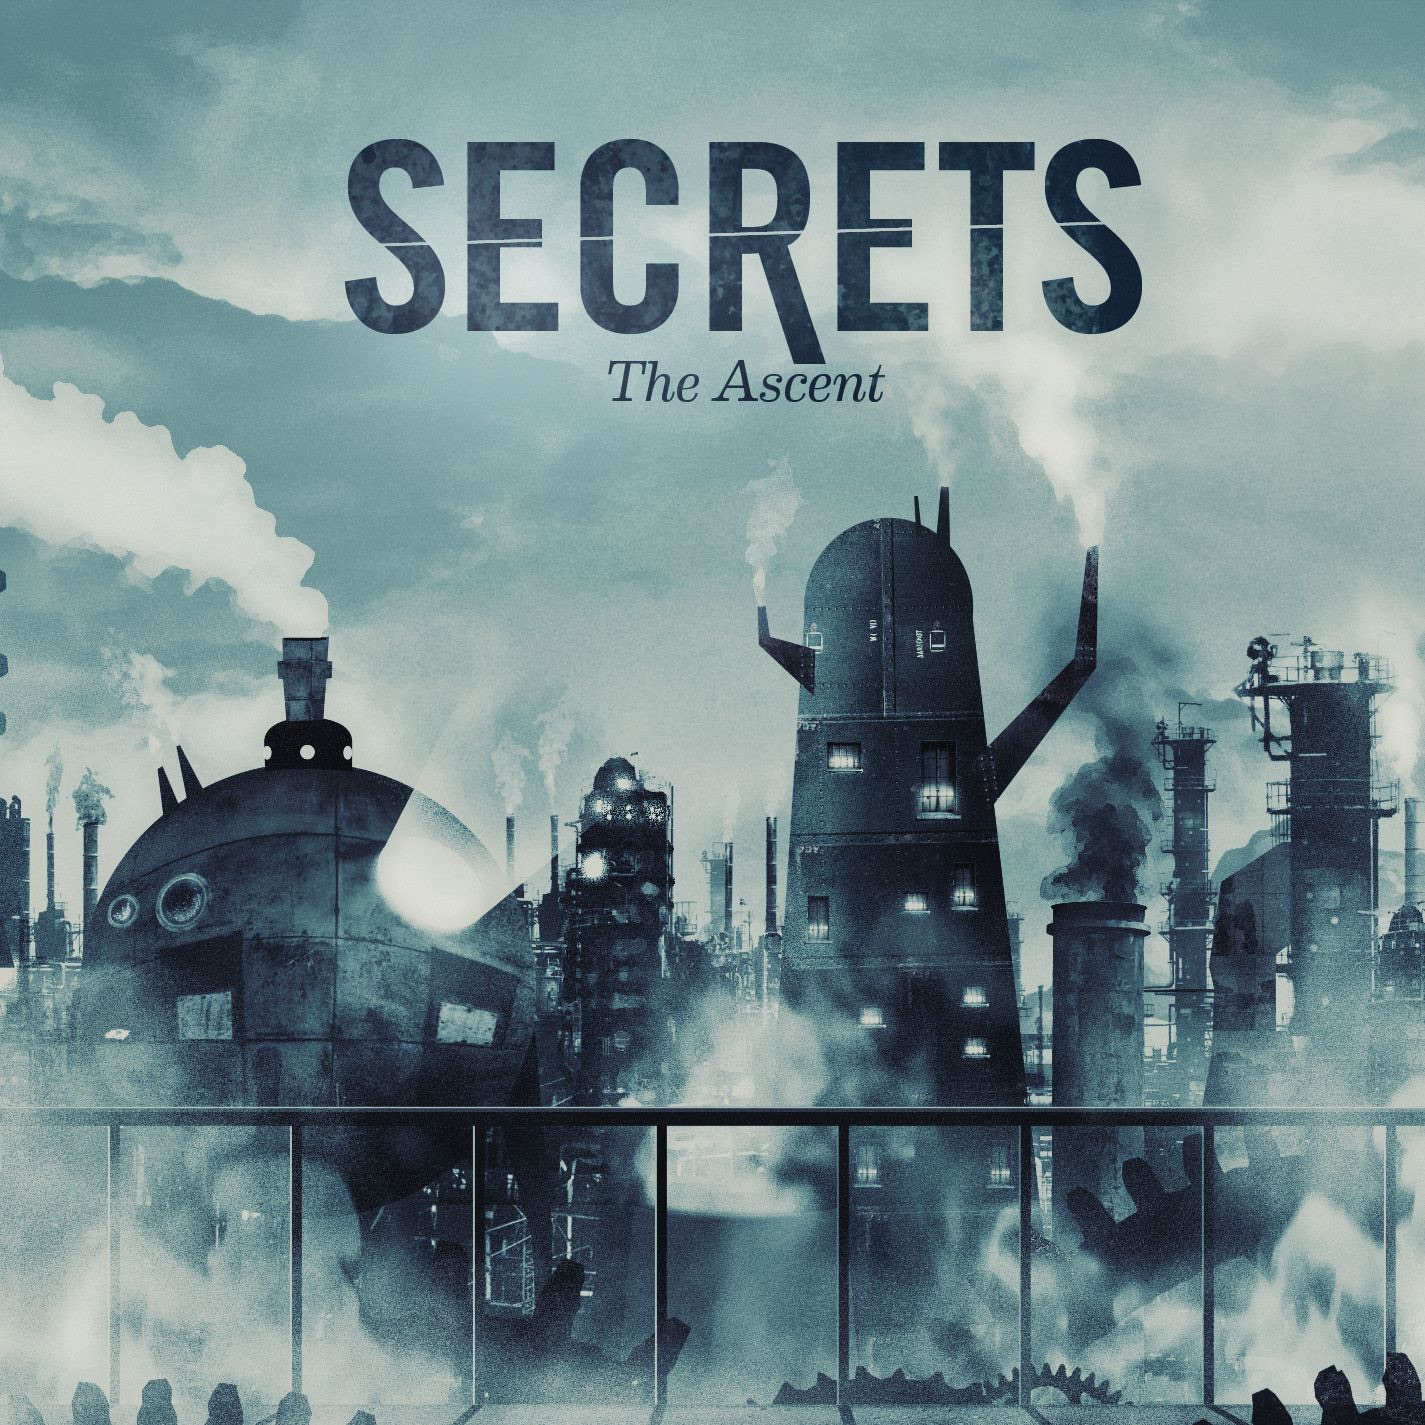 Secrets - The Ascent (2012)